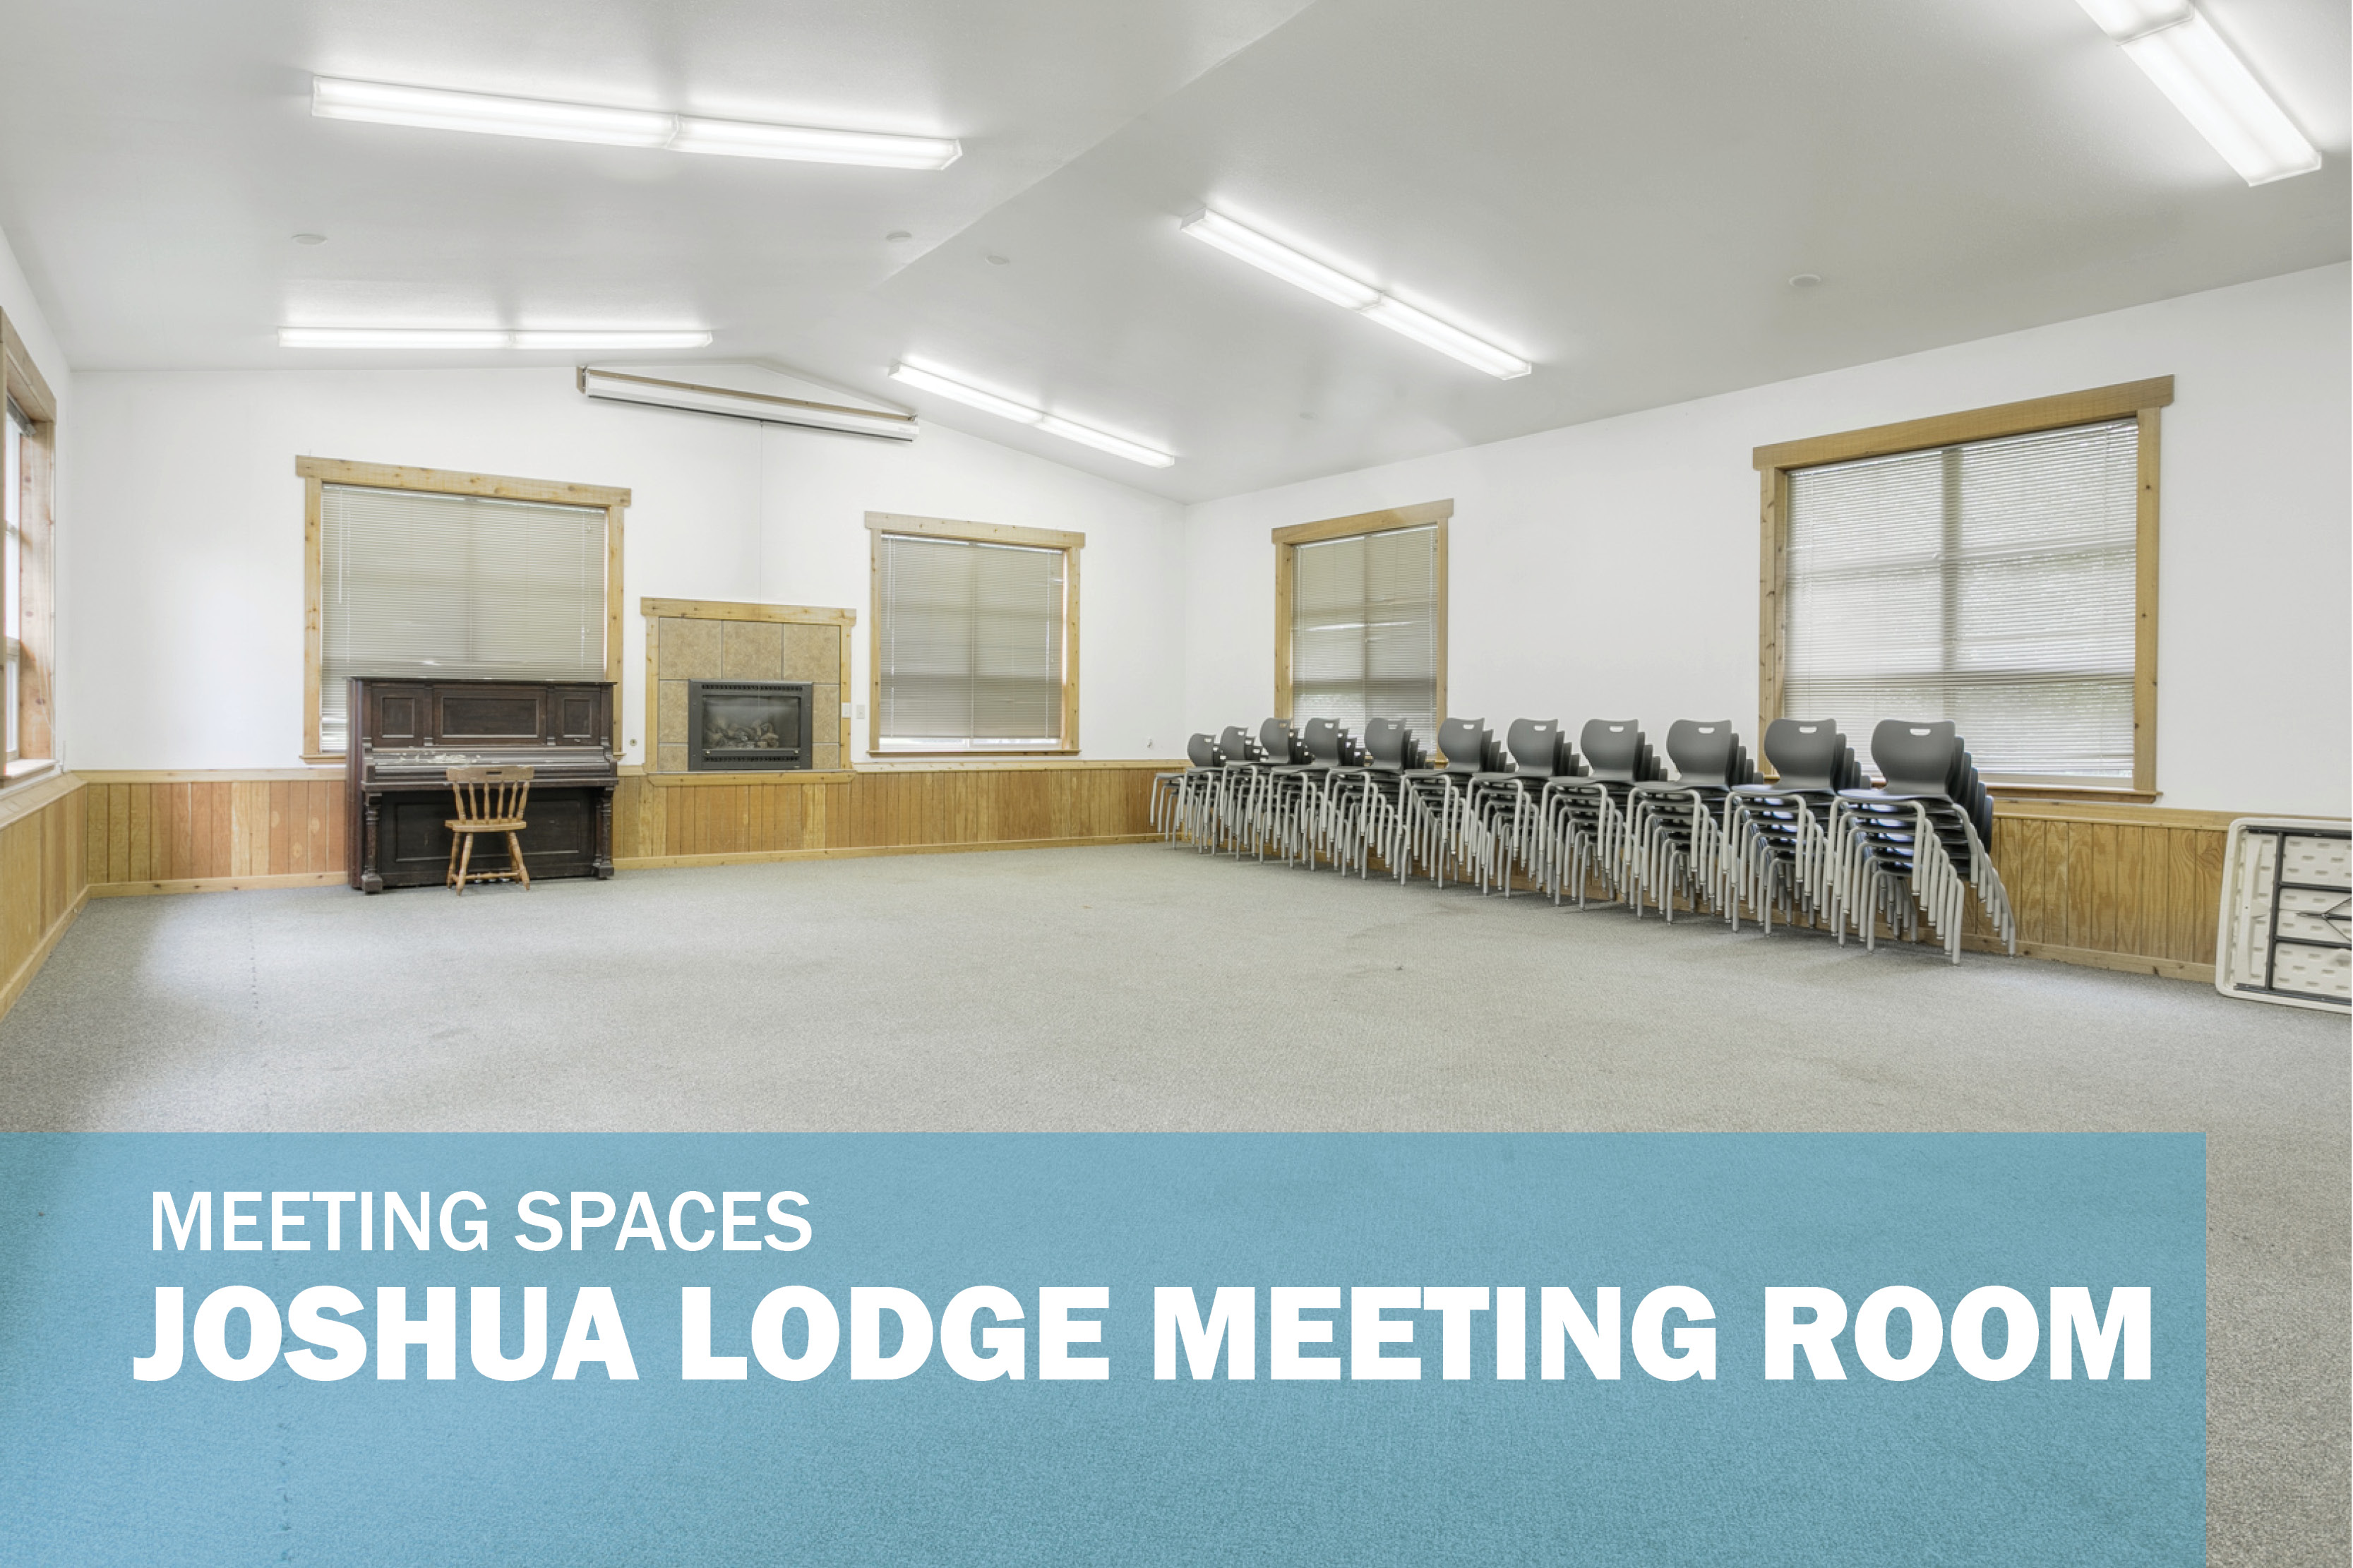 JOSHUA LODGE MEETING ROOM-1